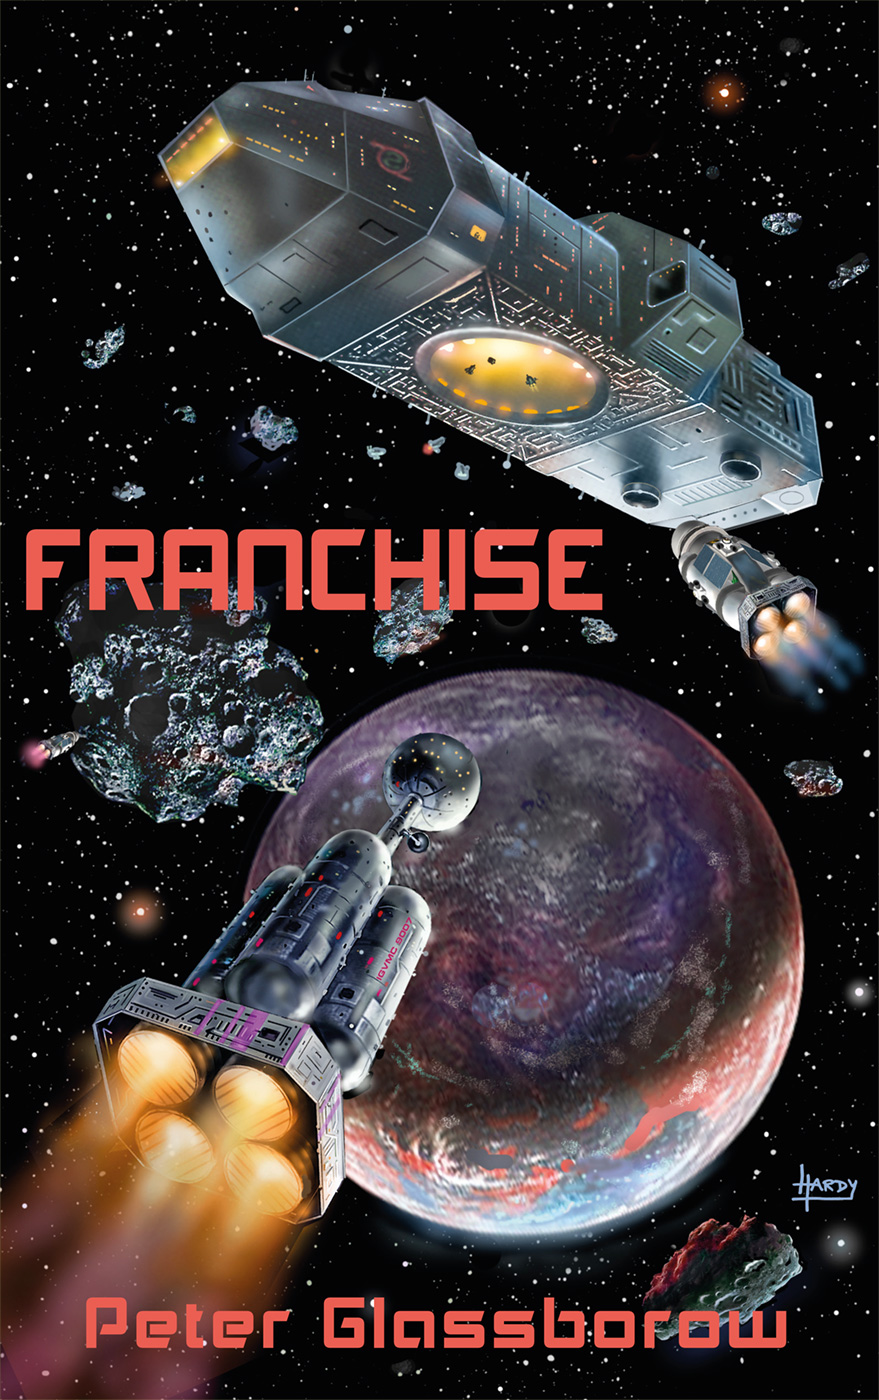 Franchise by Peter Glassborow; cover artwork by David A. Hardy